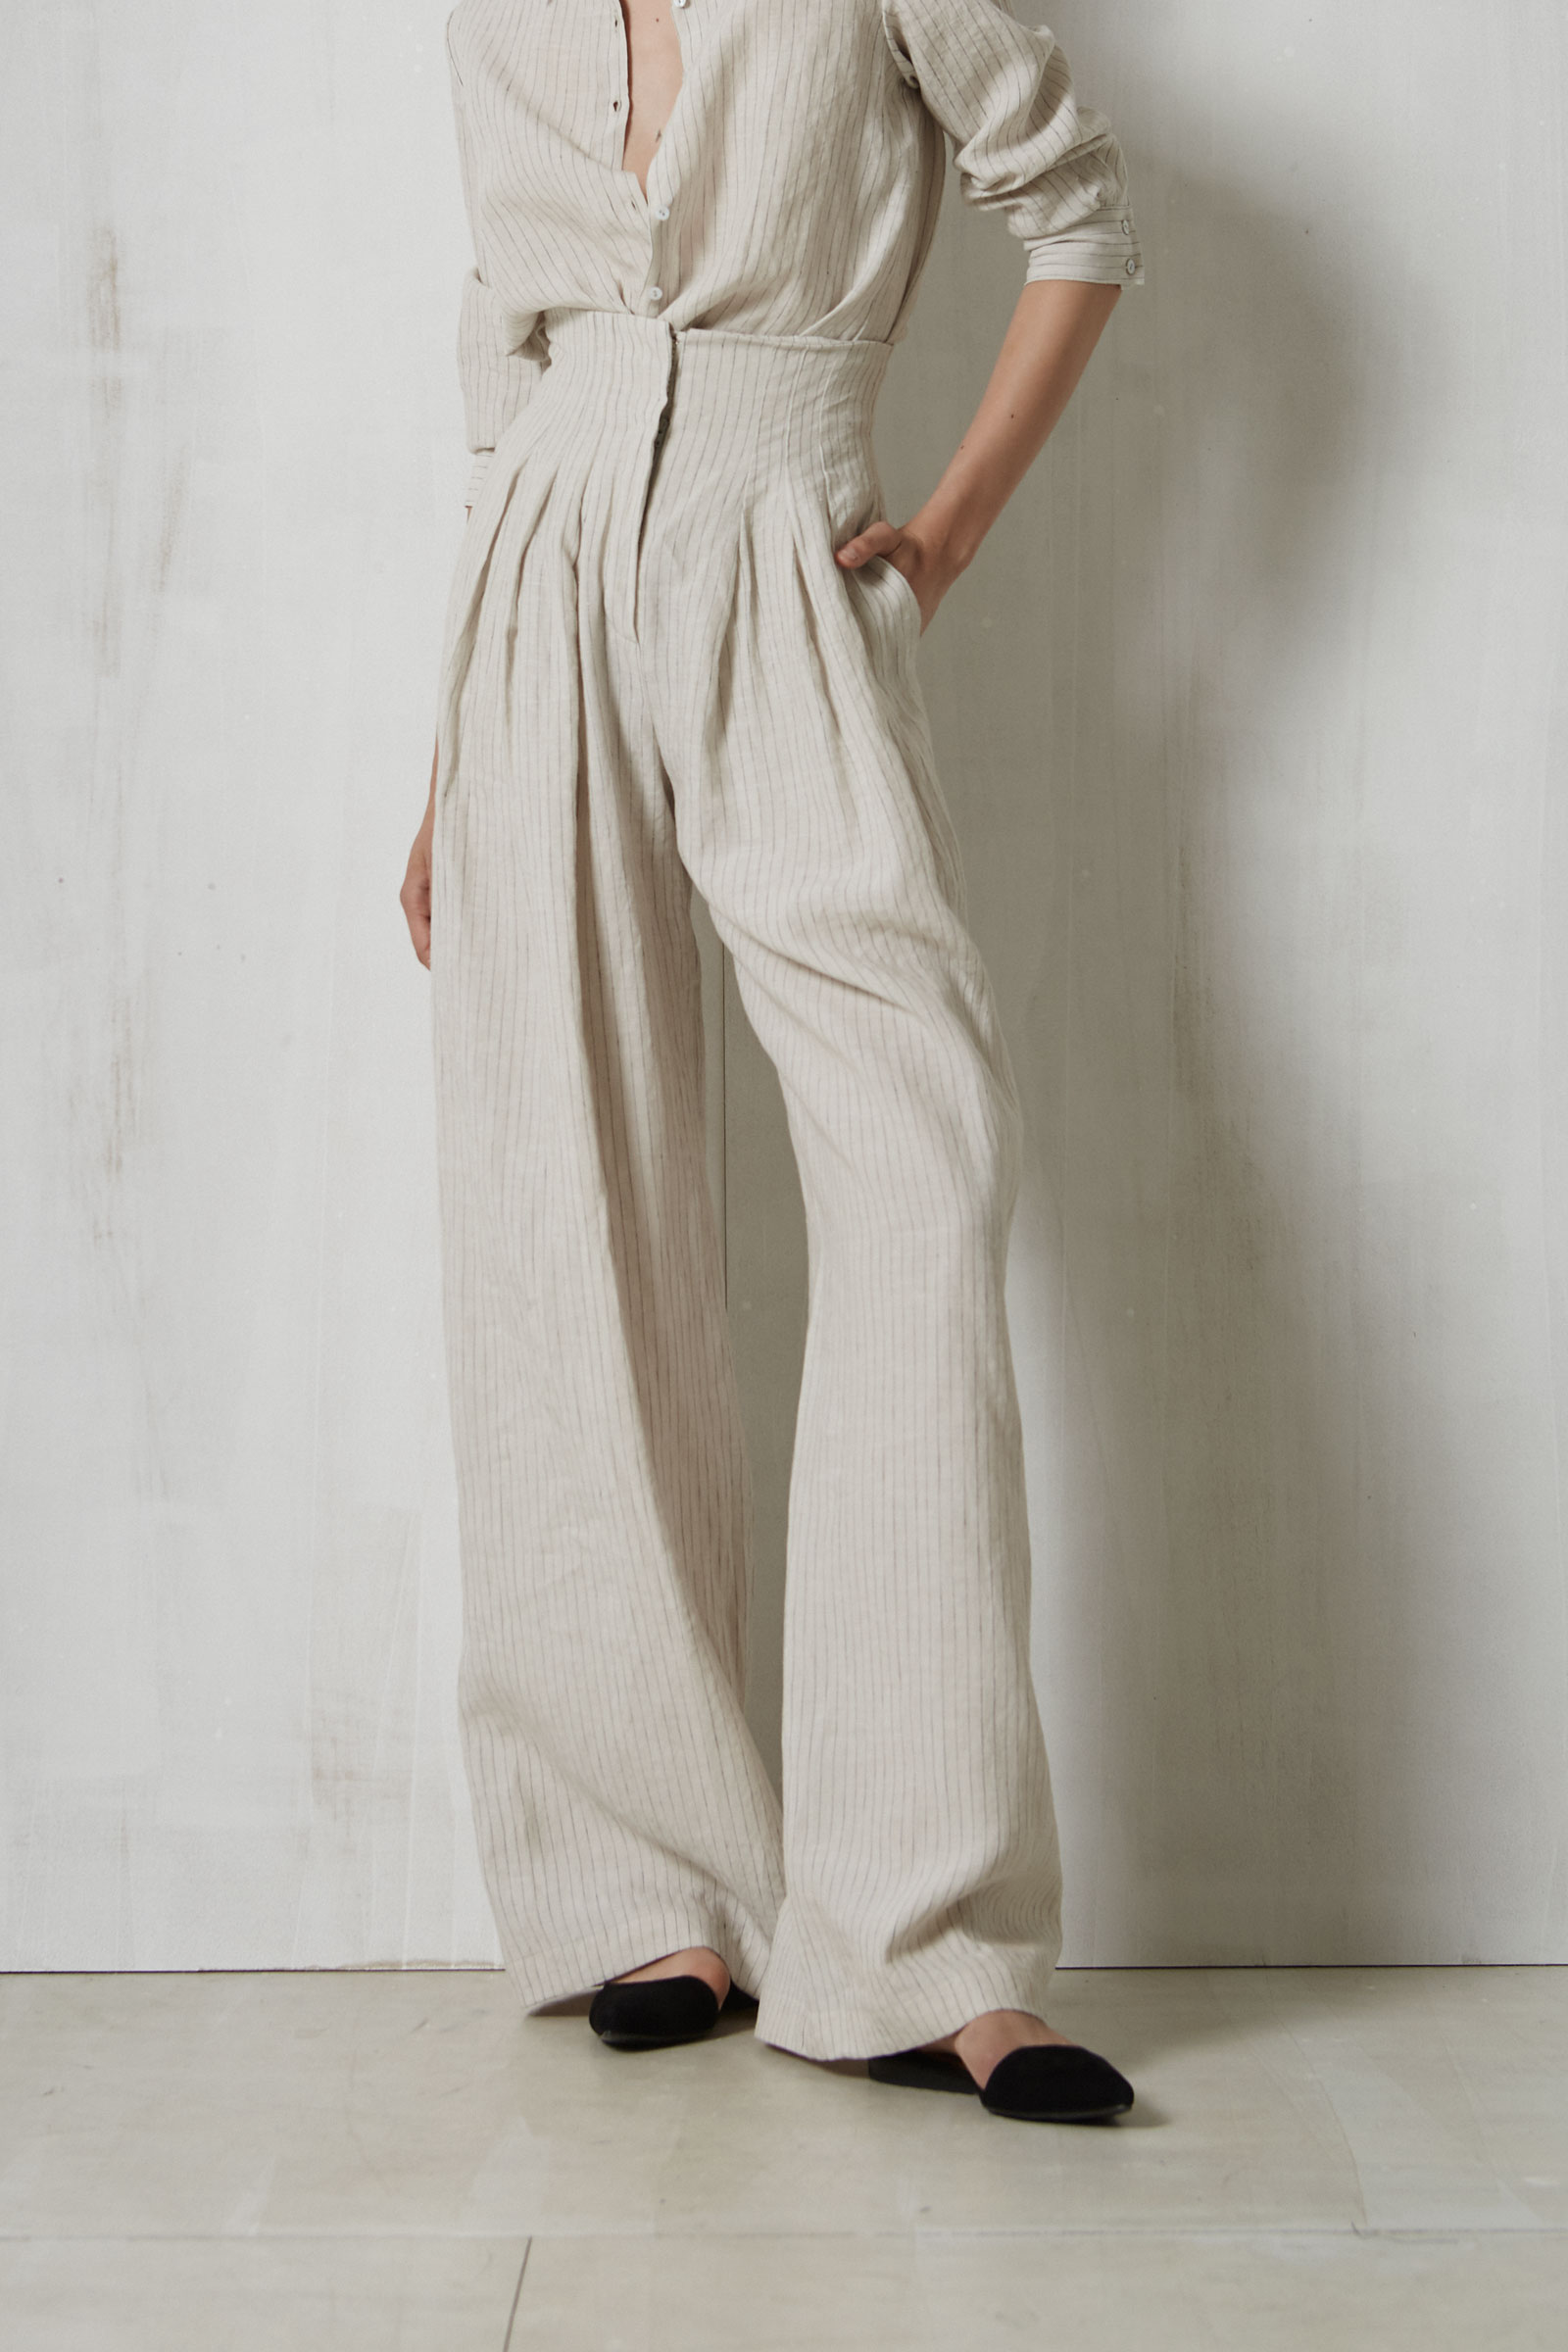 Get the best deals on linen pants fold over waist and save up to 70% off at Poshmark now! Whatever you're shopping for, we've got it.